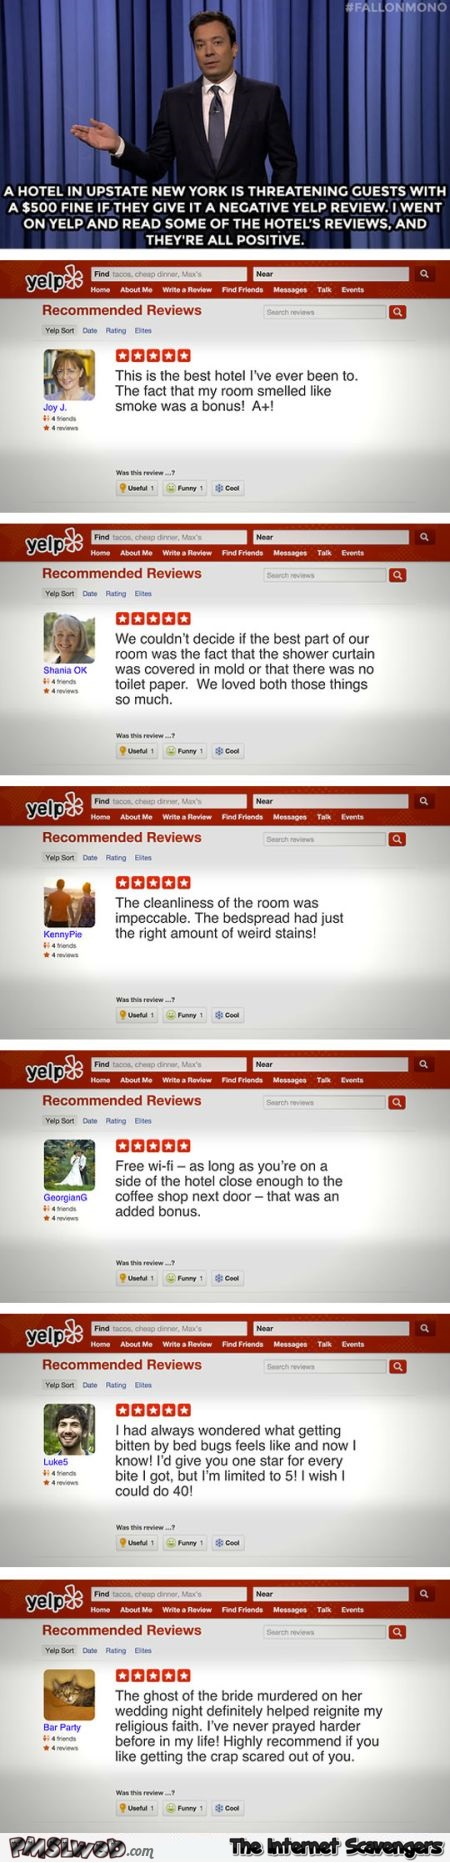 Hilarious hotel reviews @PMSLweb.com